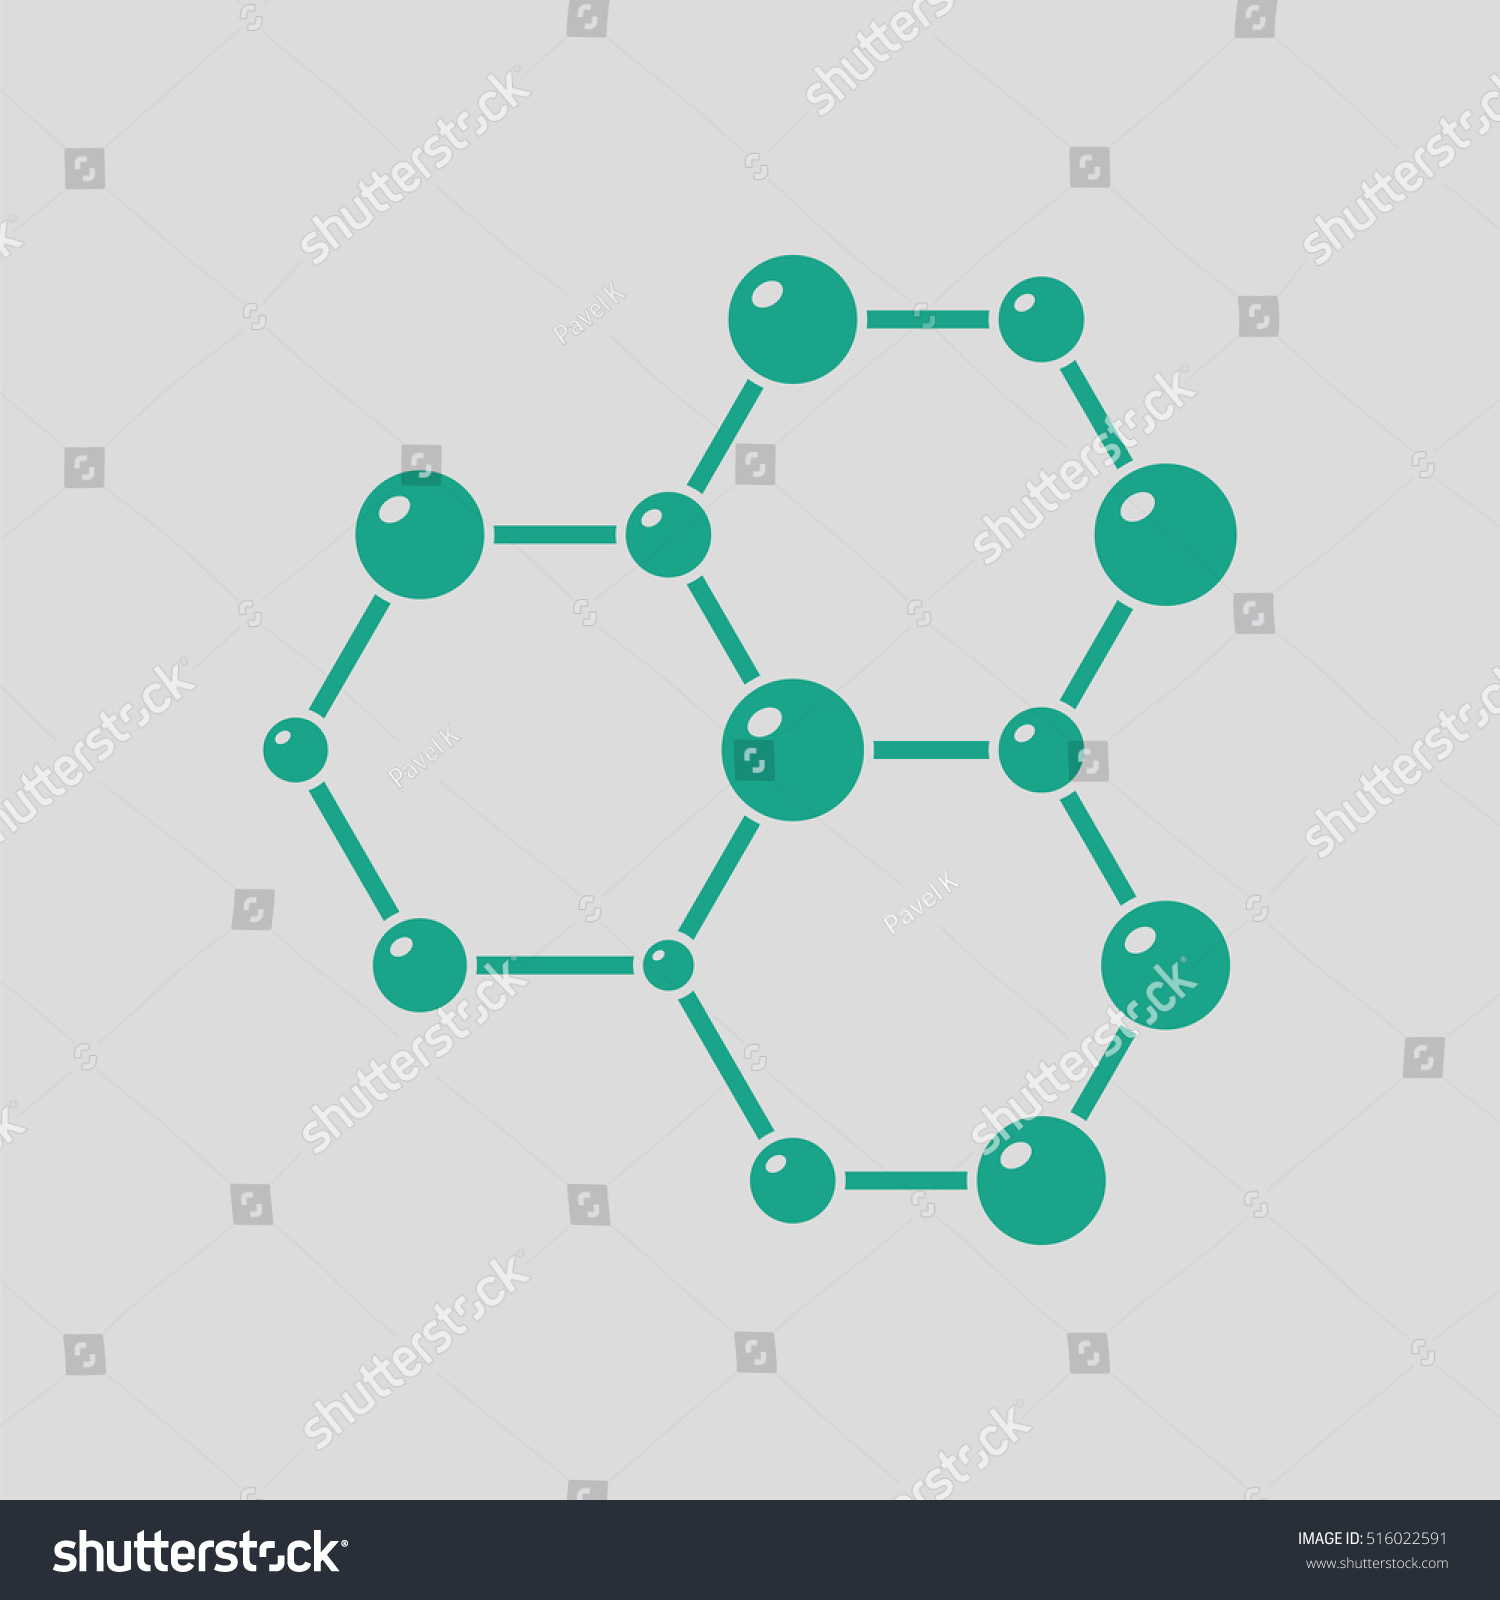 Icon chemistry hexa connection atoms gray stock vector 516022591 icon of chemistry hexa connection of atoms gray background with green vector illustration ccuart Images